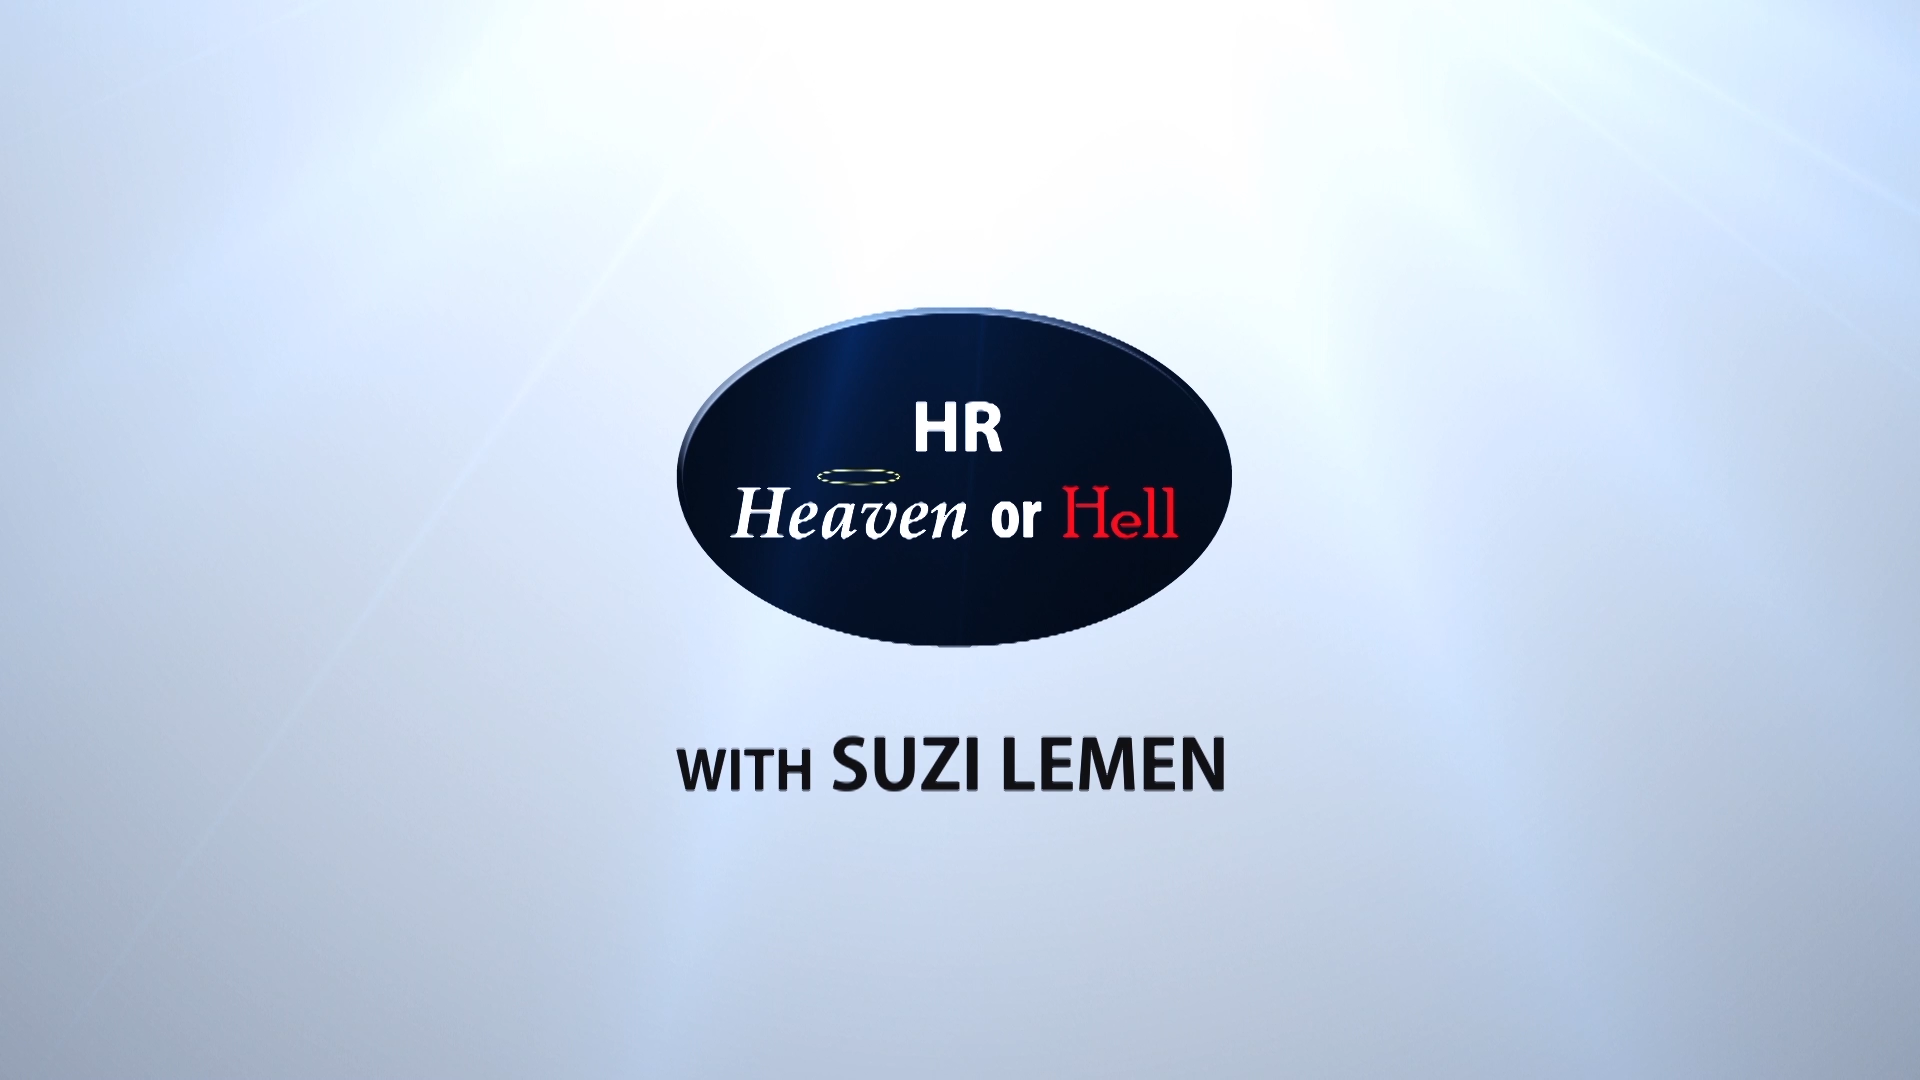 HR Heaven or Hell